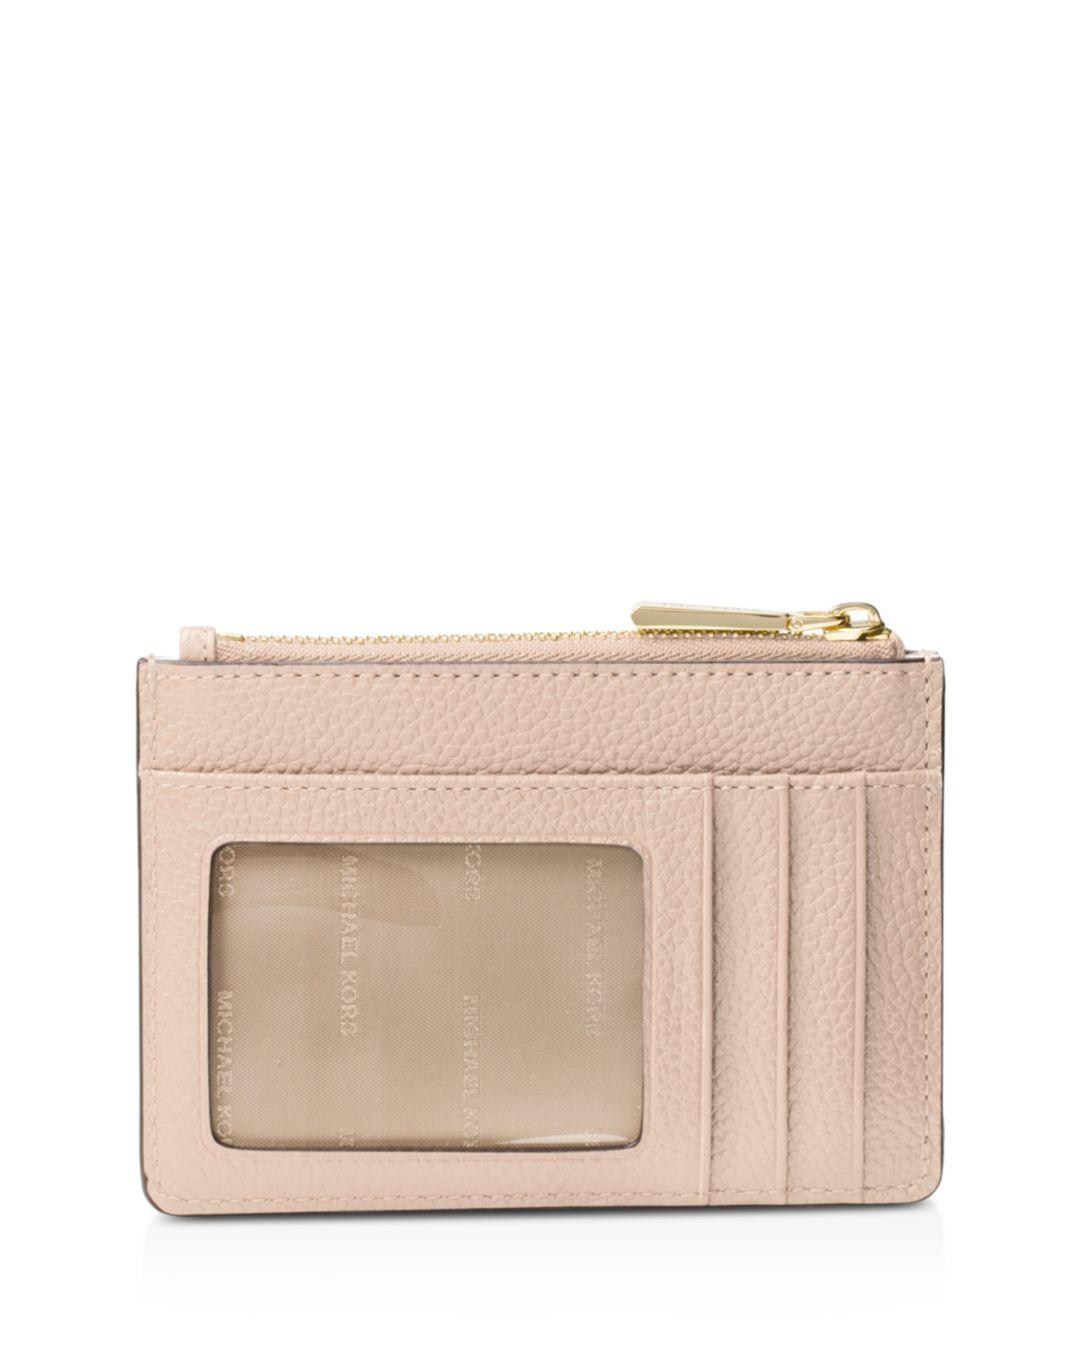 a212e1533b1d2 Lyst - Michael Kors Mercer Small Leather Coin Purse in Pink